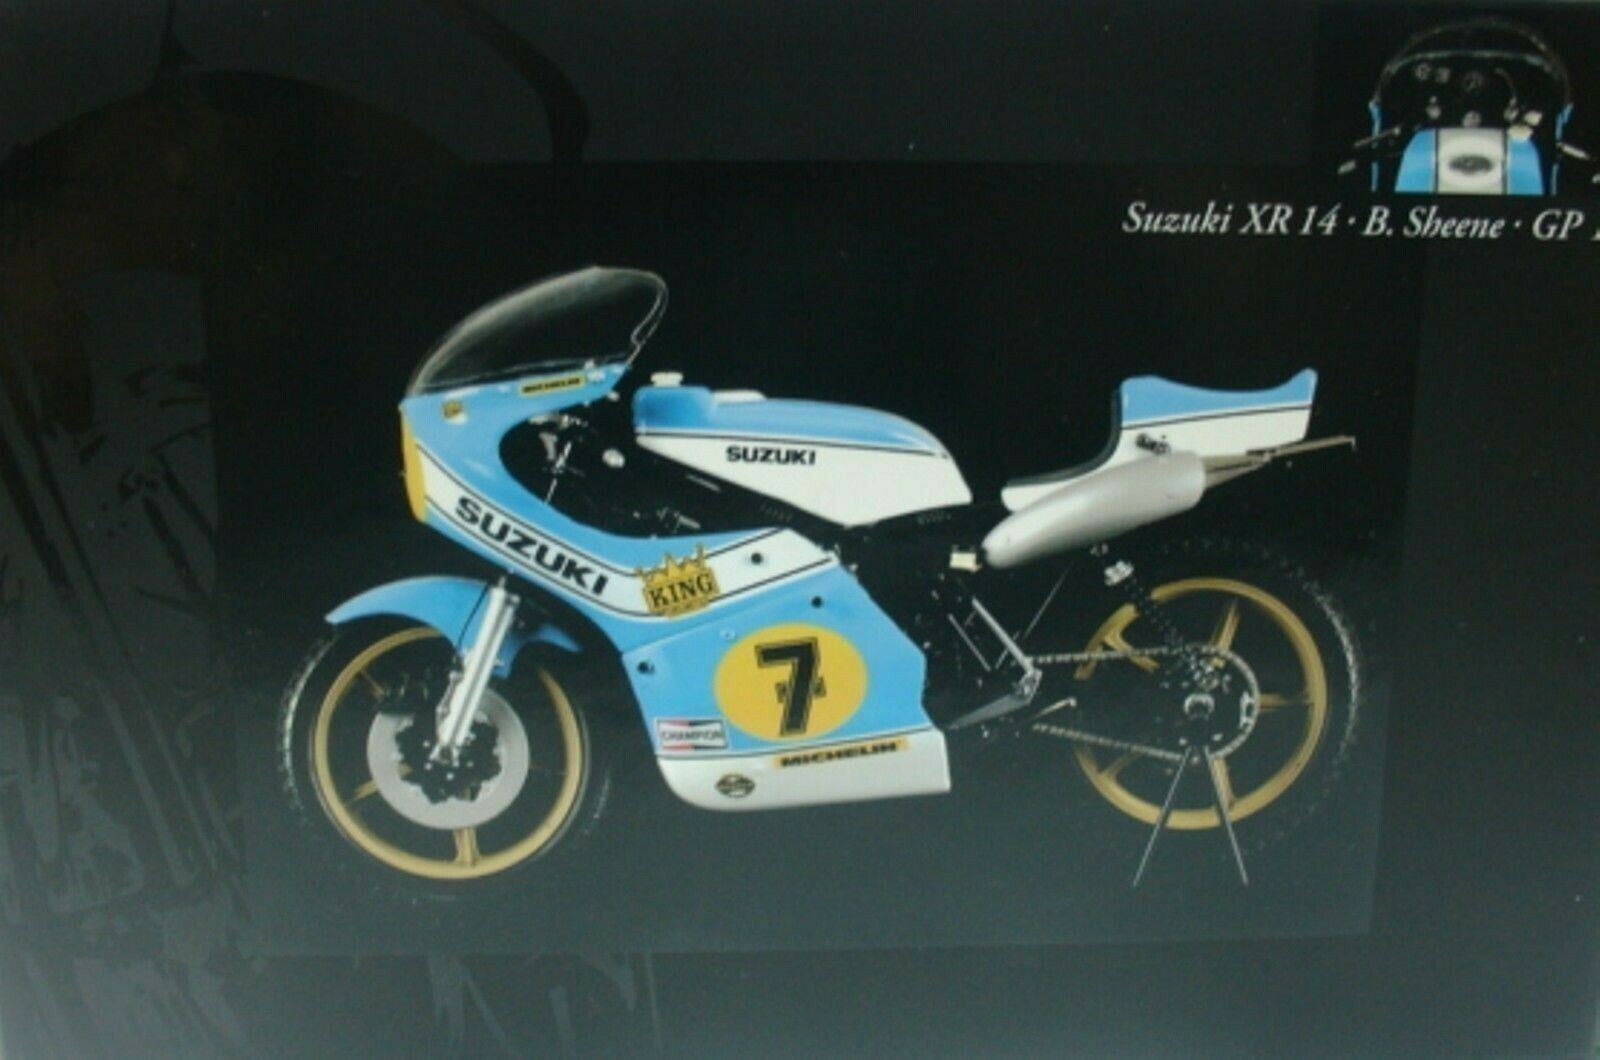 WOW estremamente raro SUZUKI XR14 500 #7 SHEENE WINNER Svezia 1975 1:12 Minichamps